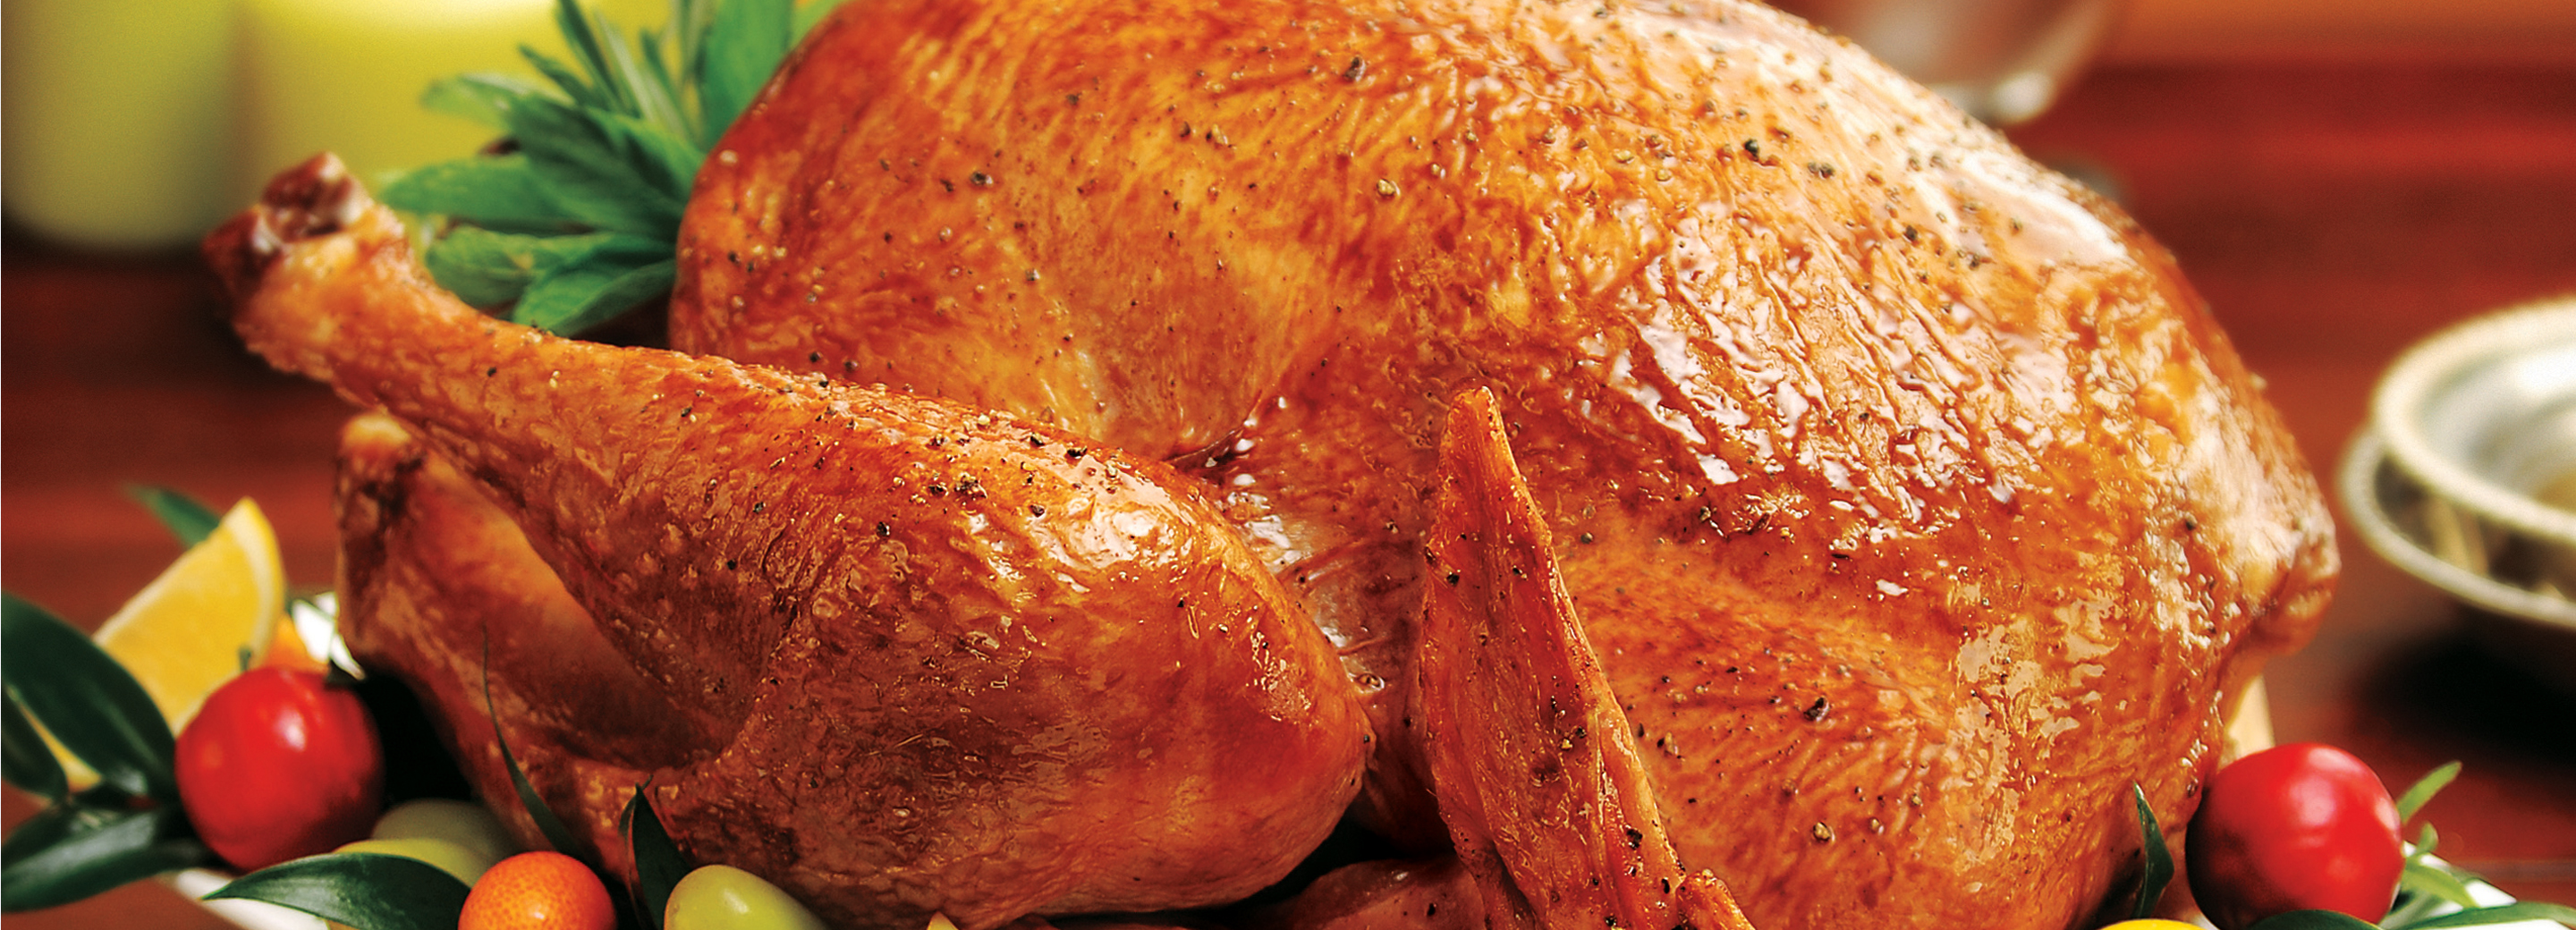 Roasted Garlic and Herb Turkey